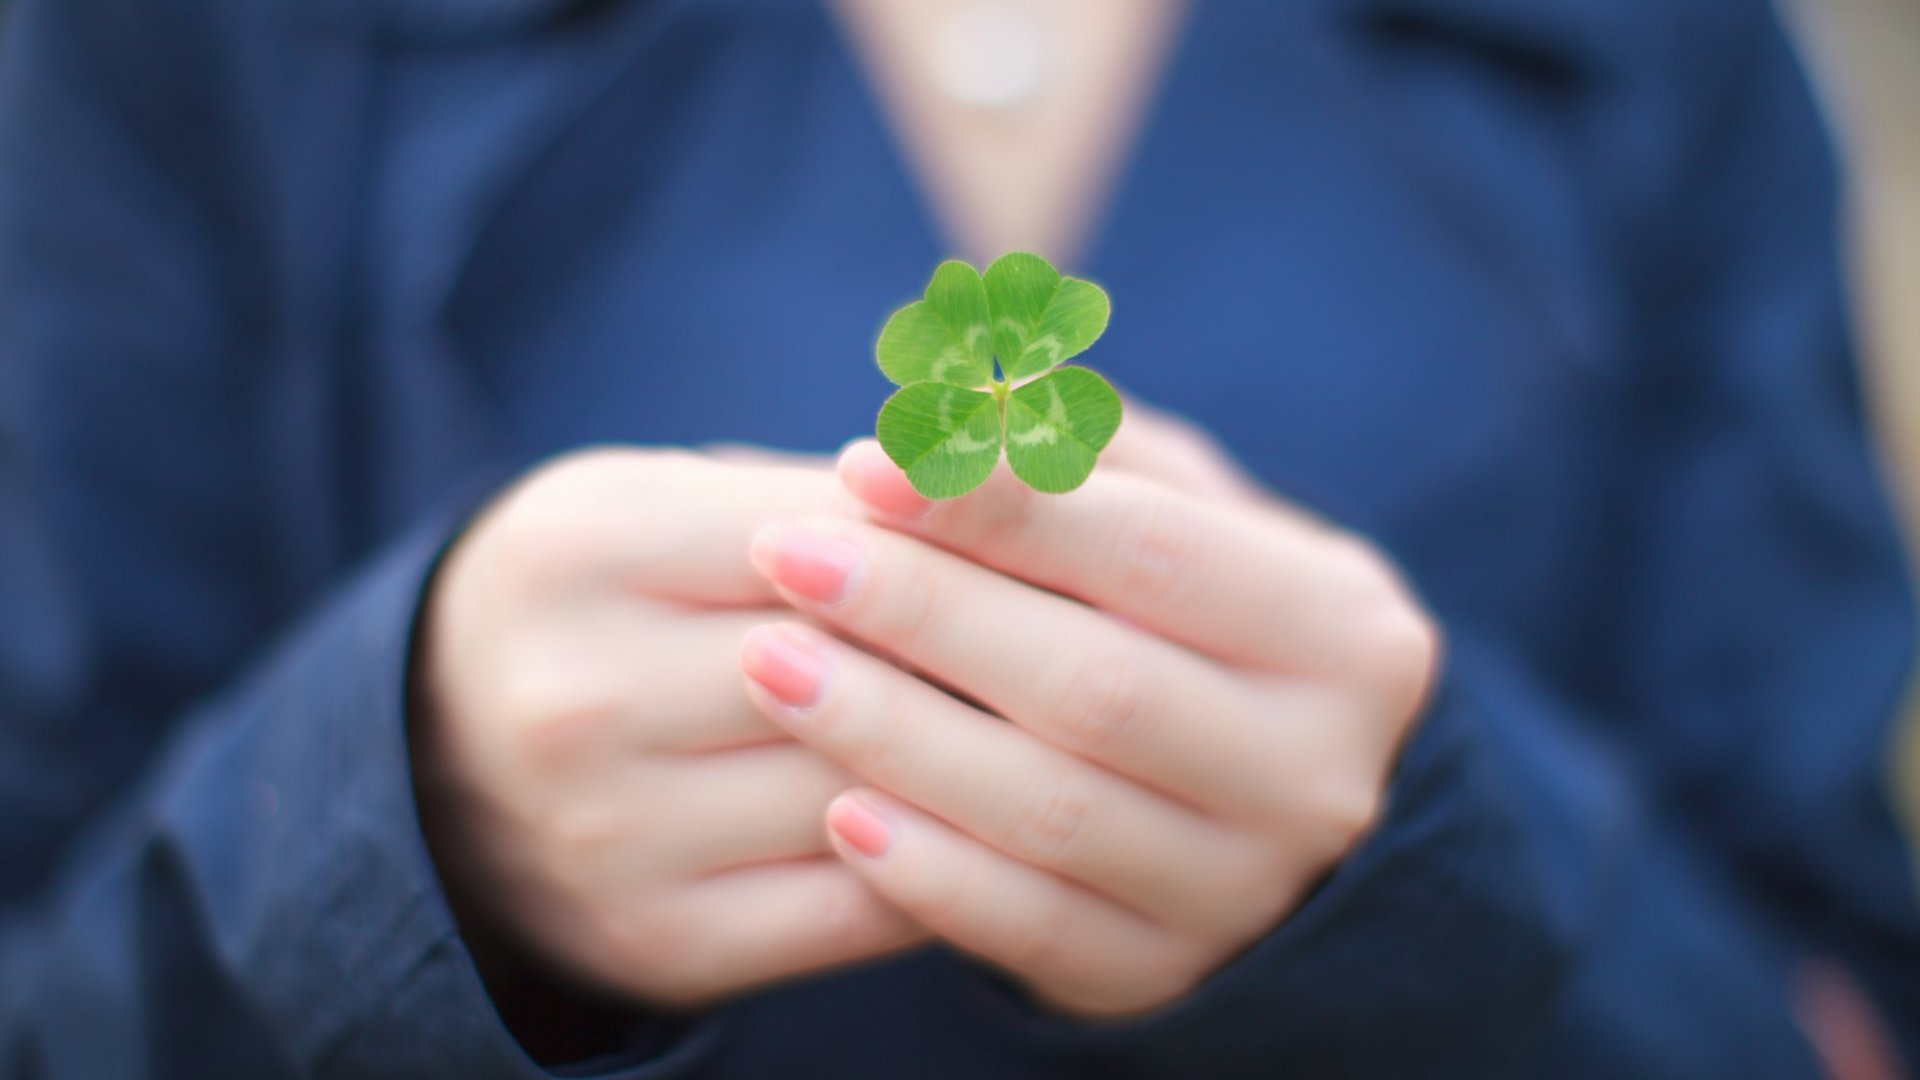 7 Things Incredibly Lucky People Do